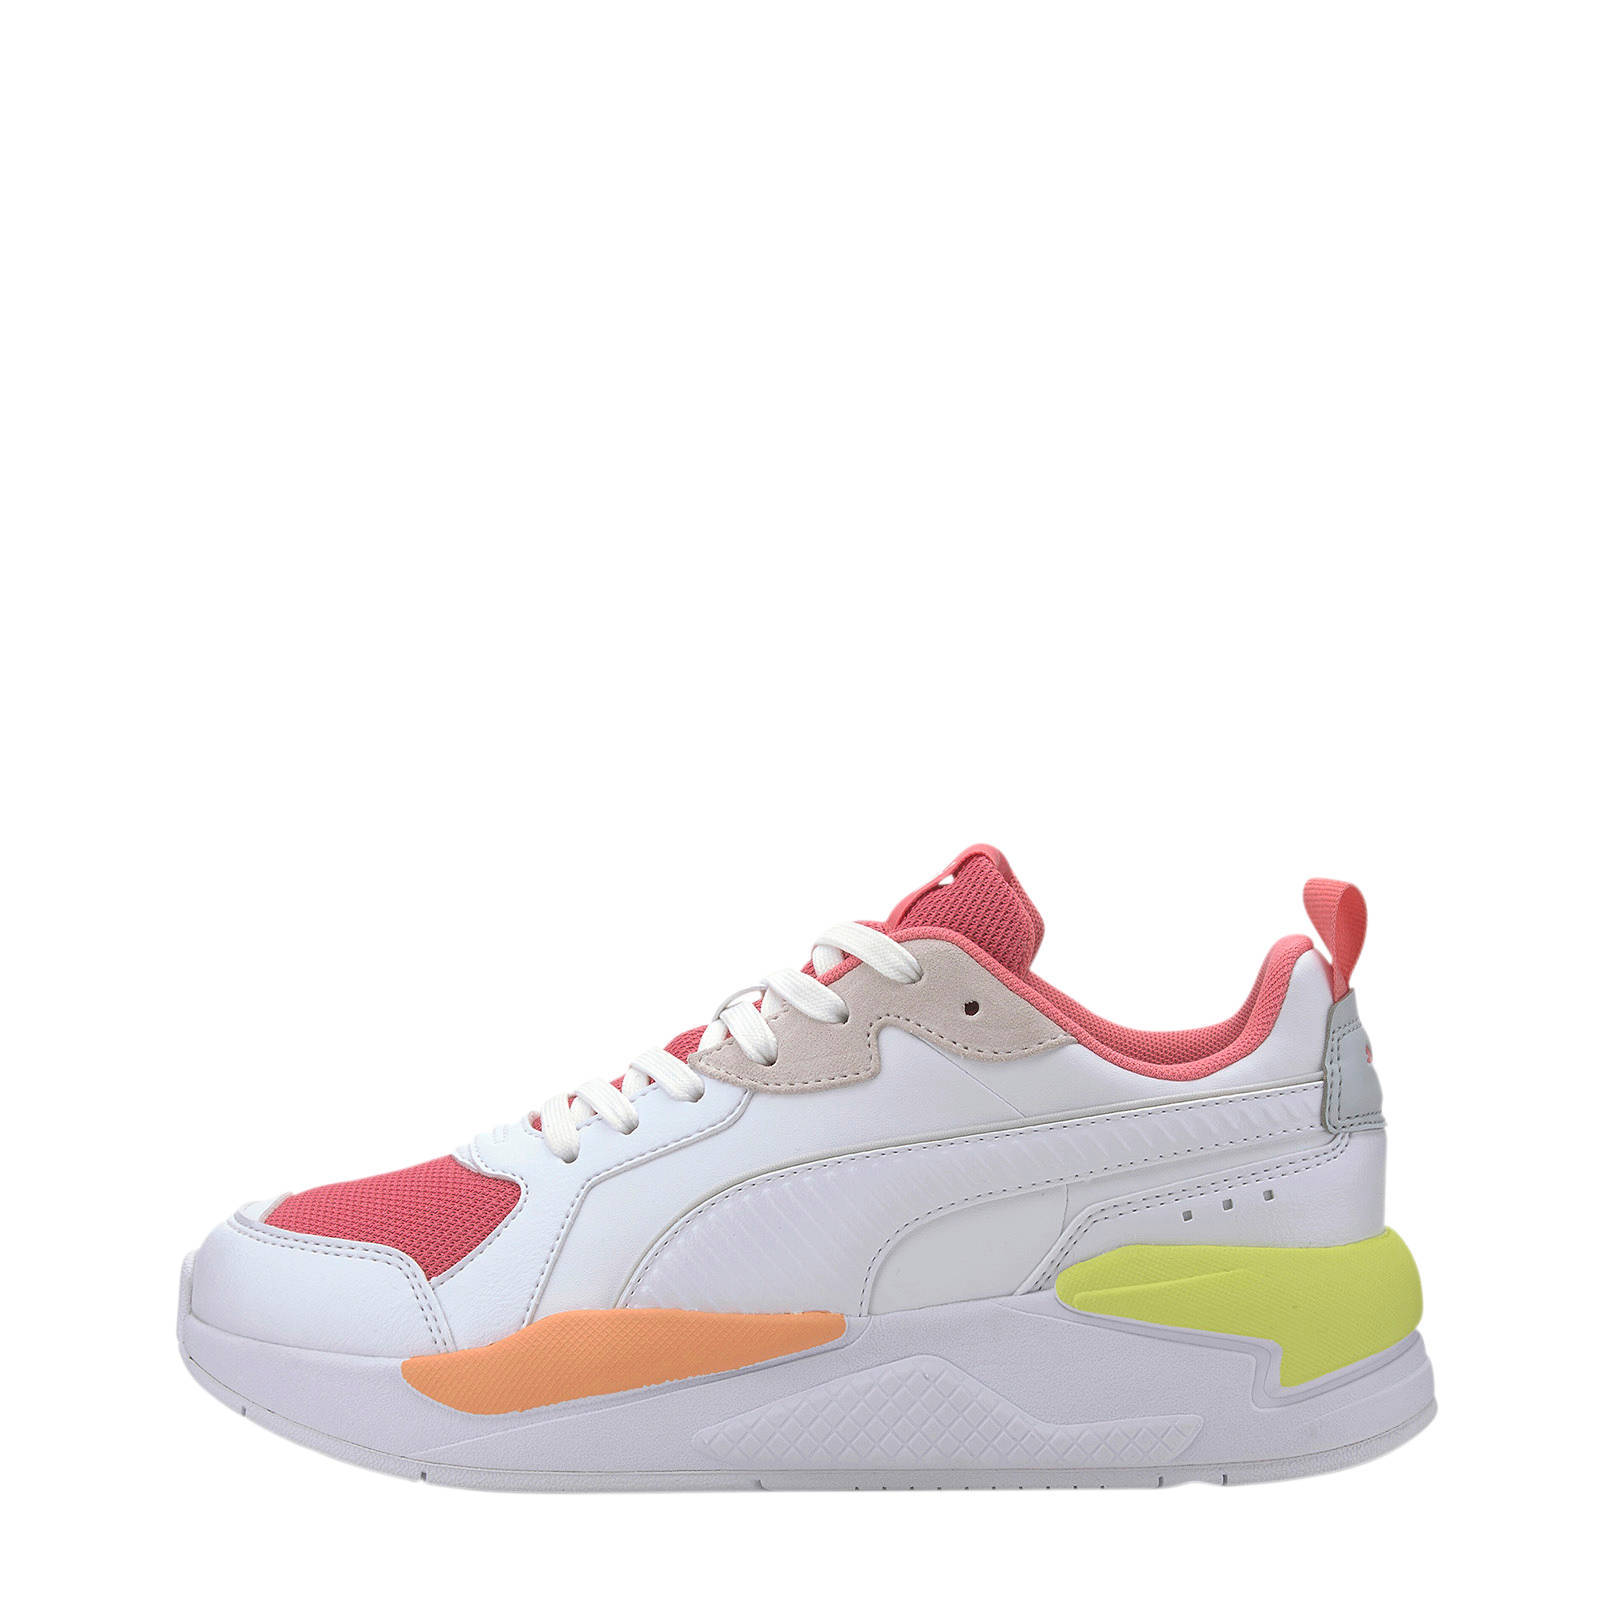 Puma X-Ray Game sneakers wit/roze/geel | wehkamp